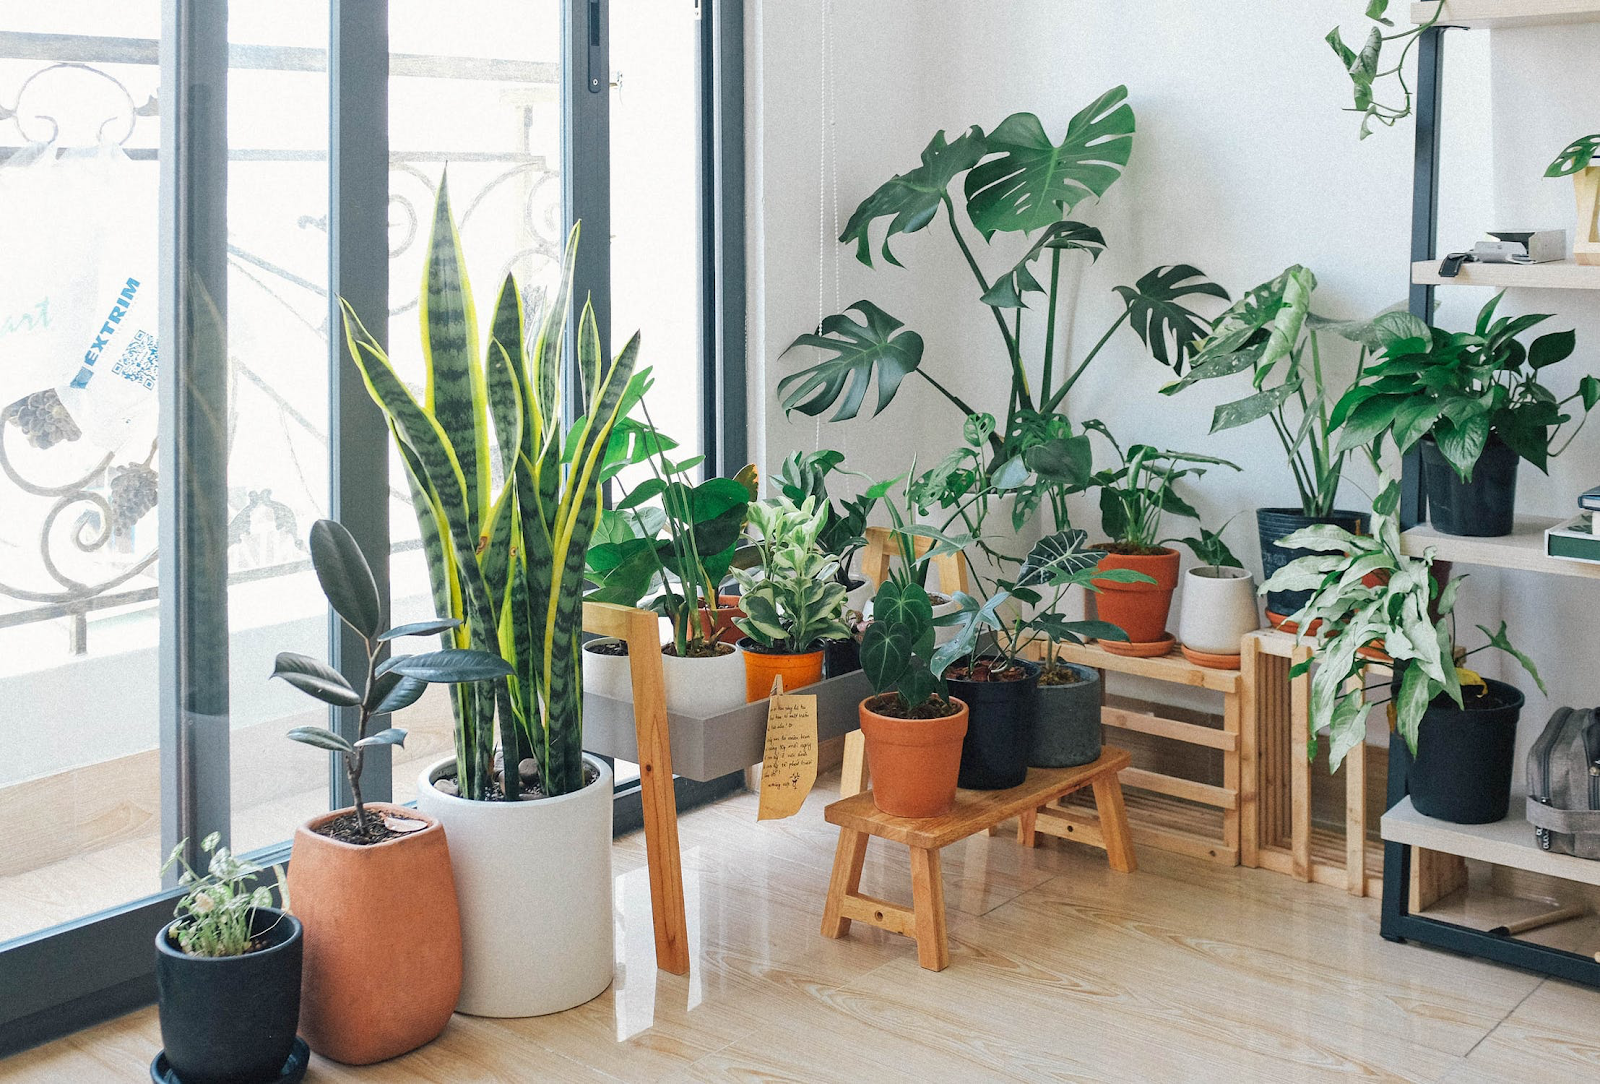 houseplants in a bright apartment